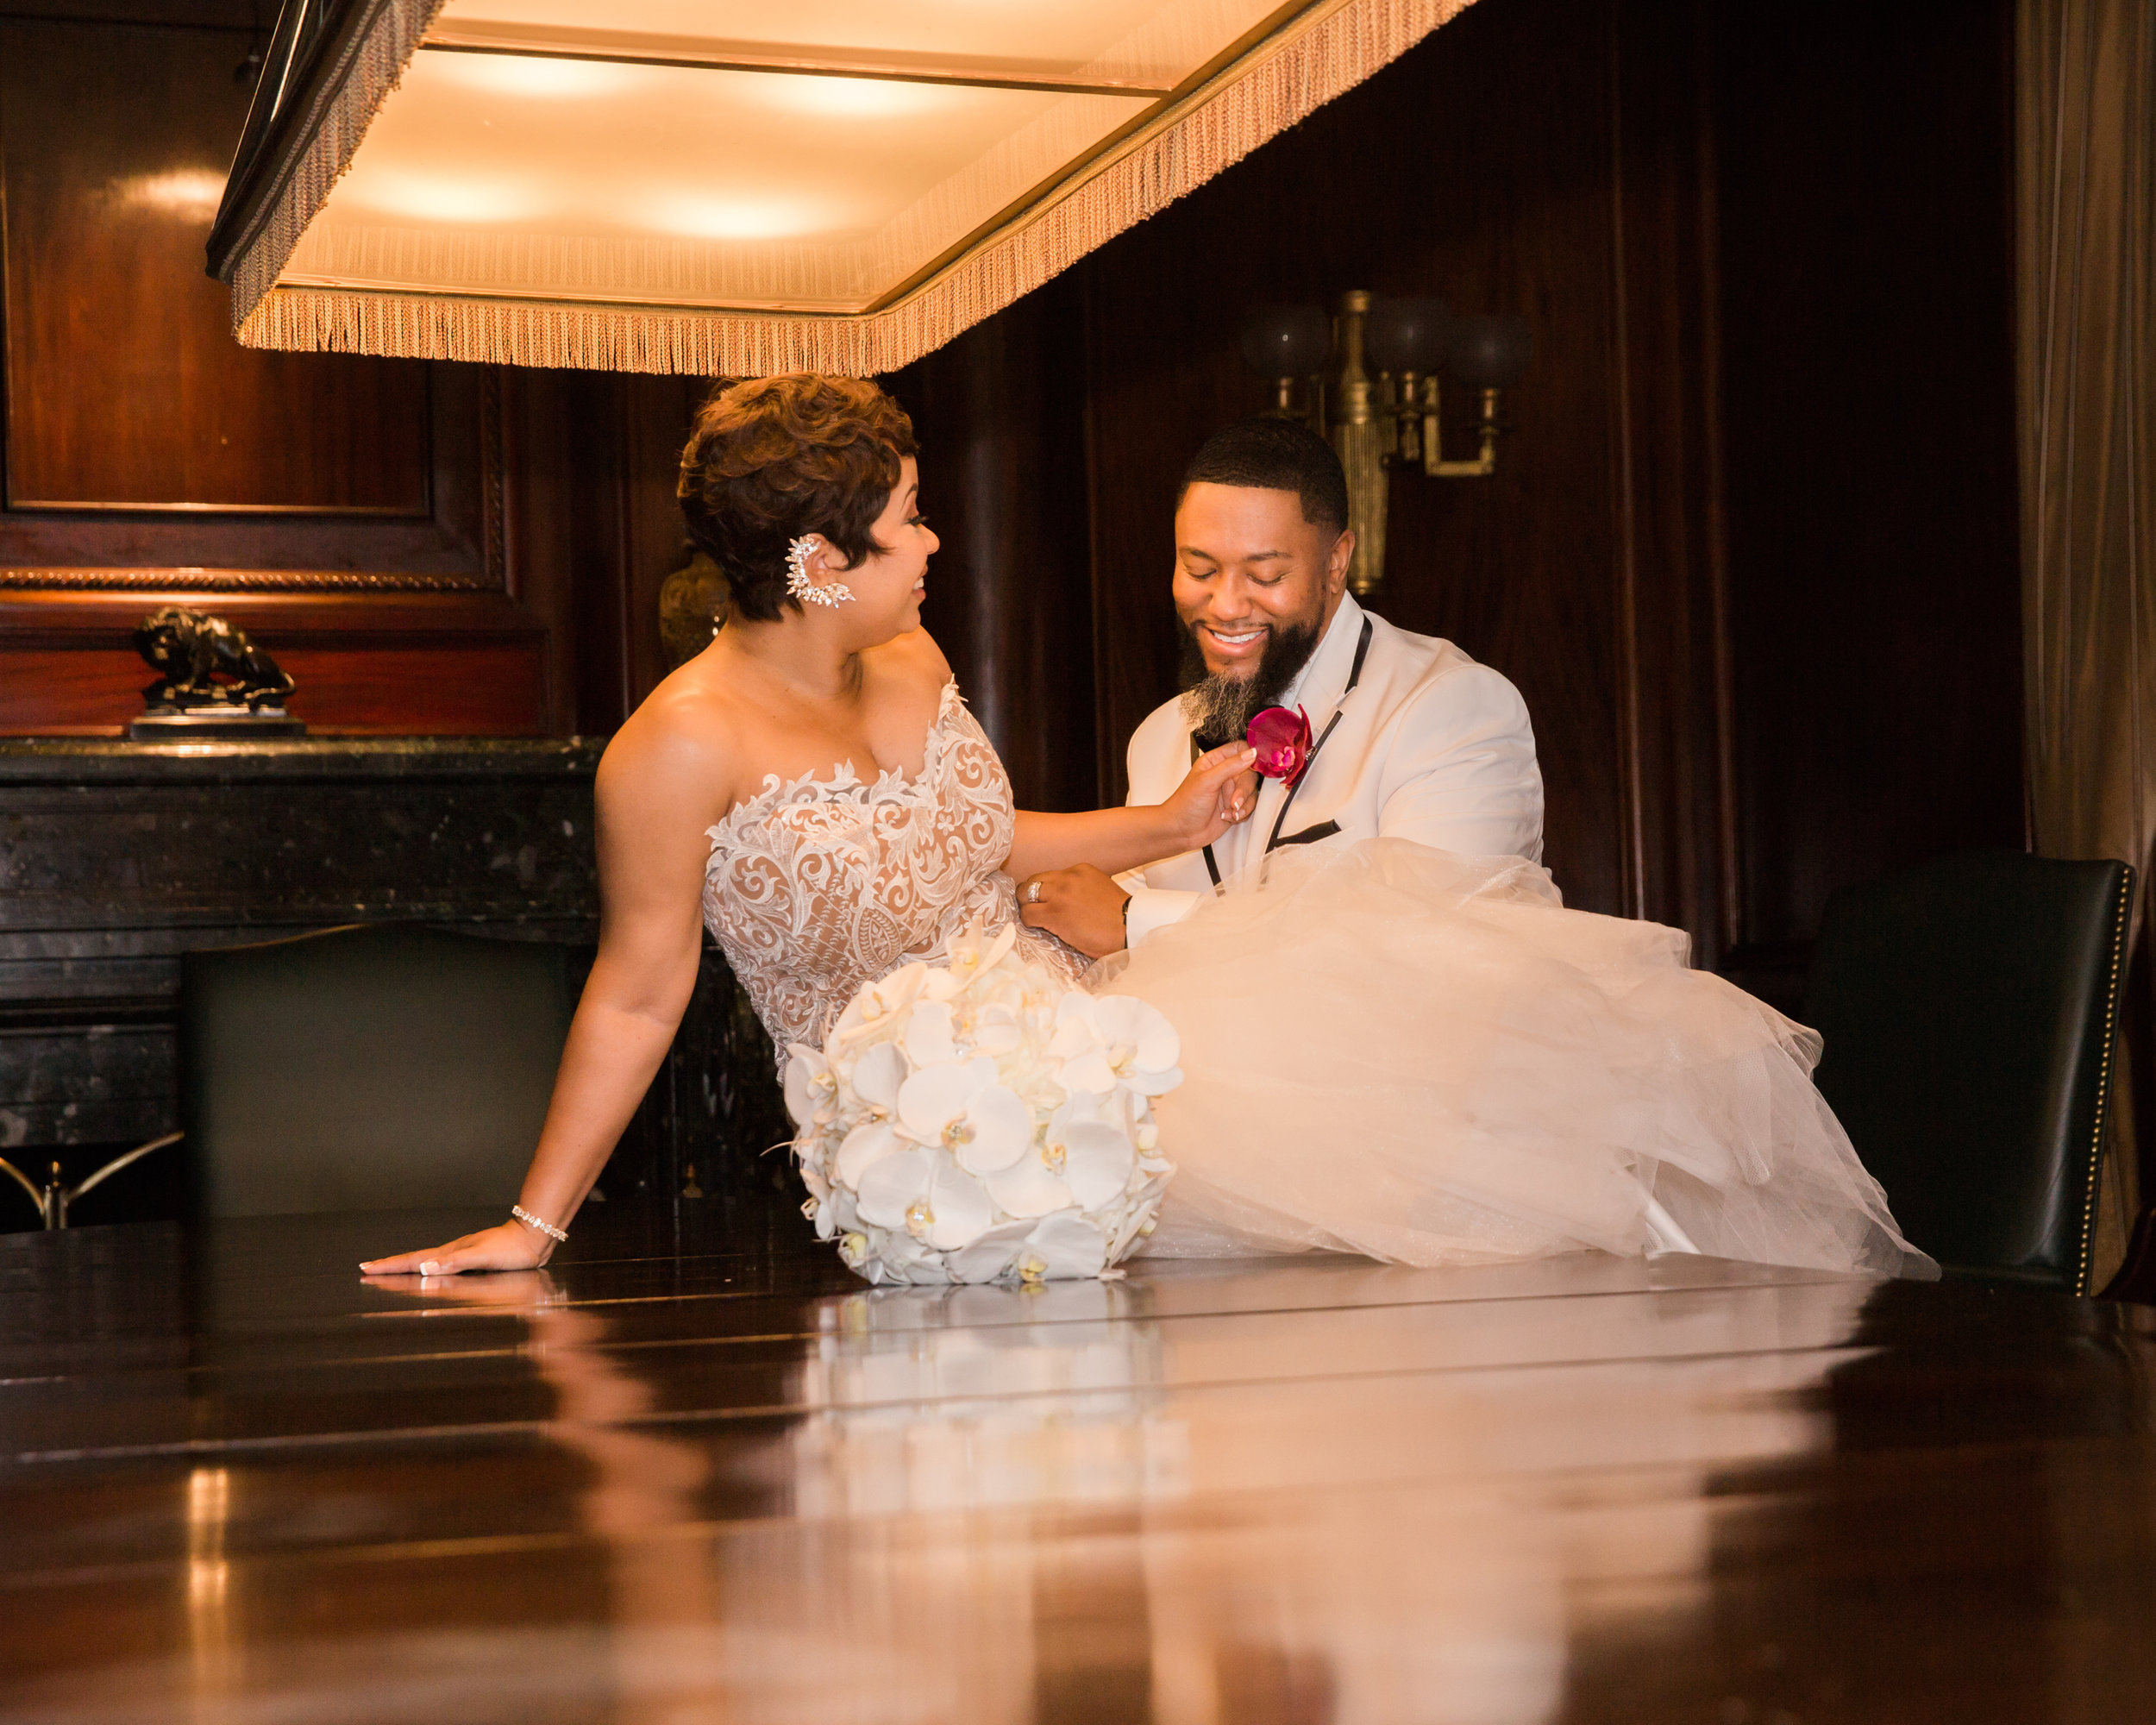 Best Classic Black Bride at The Grand Baltimore Maryland Husband and Wife Wedding Photographers Megapixels Media (56 of 98).jpg